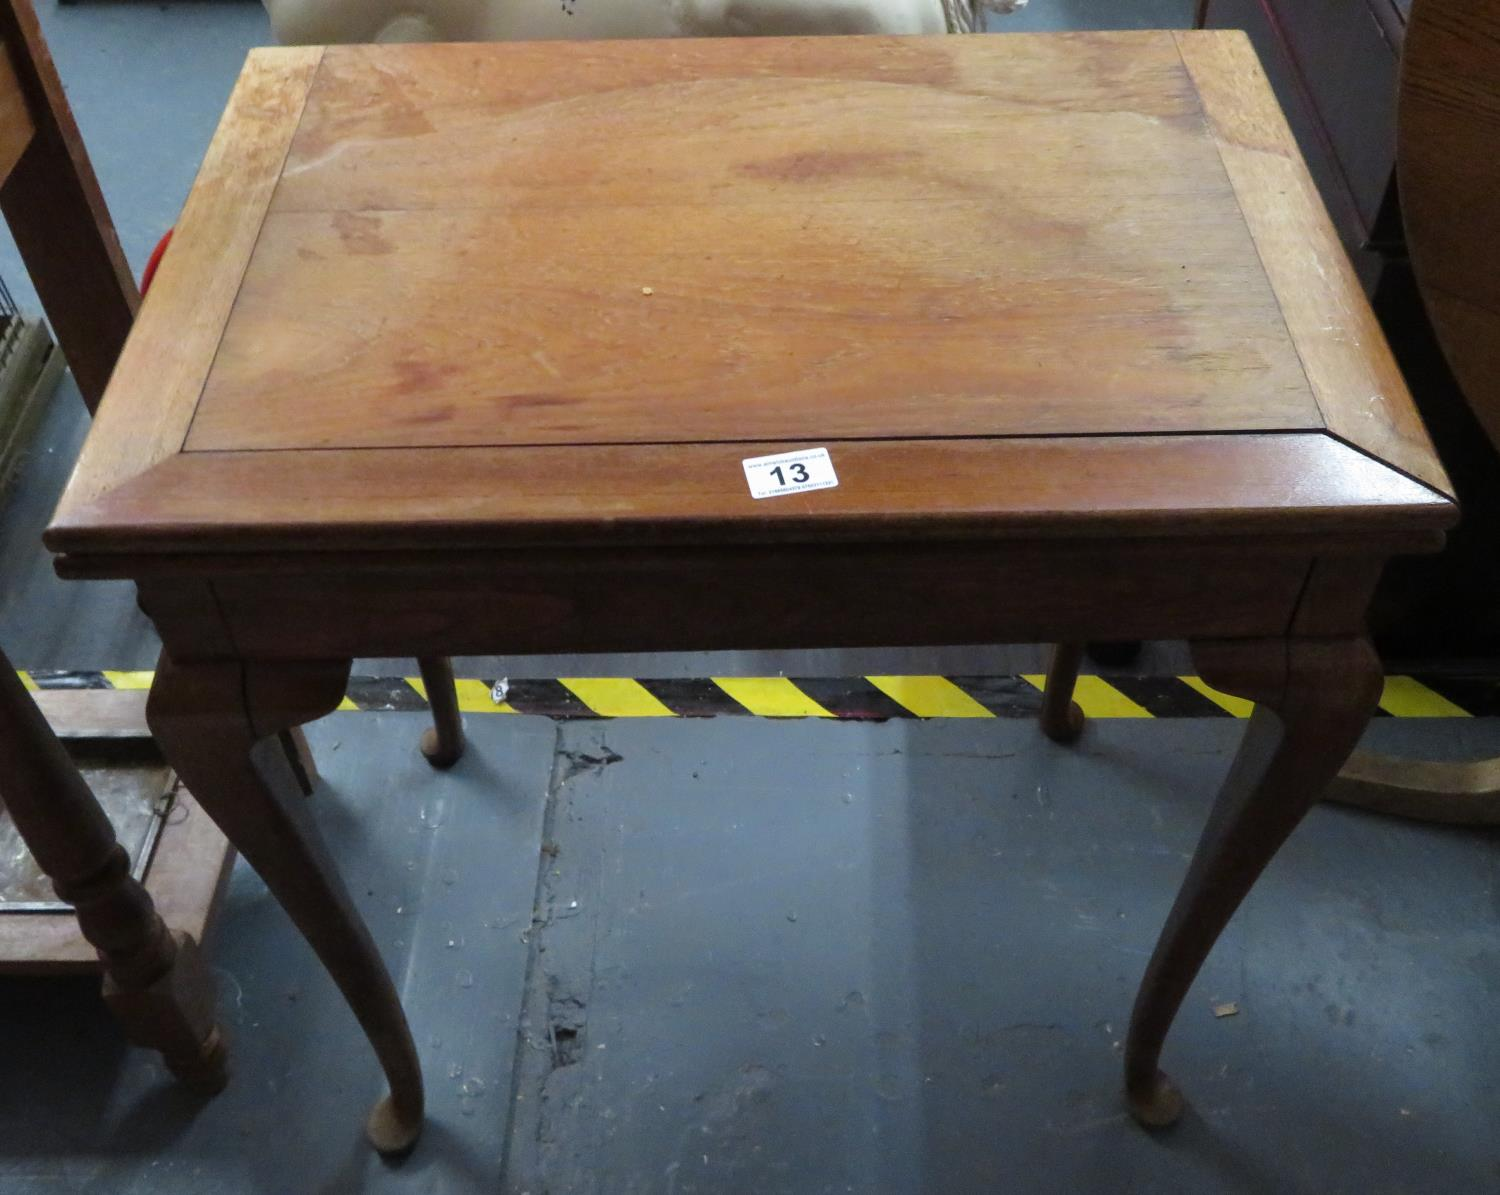 Lot 13 - Flip top card table